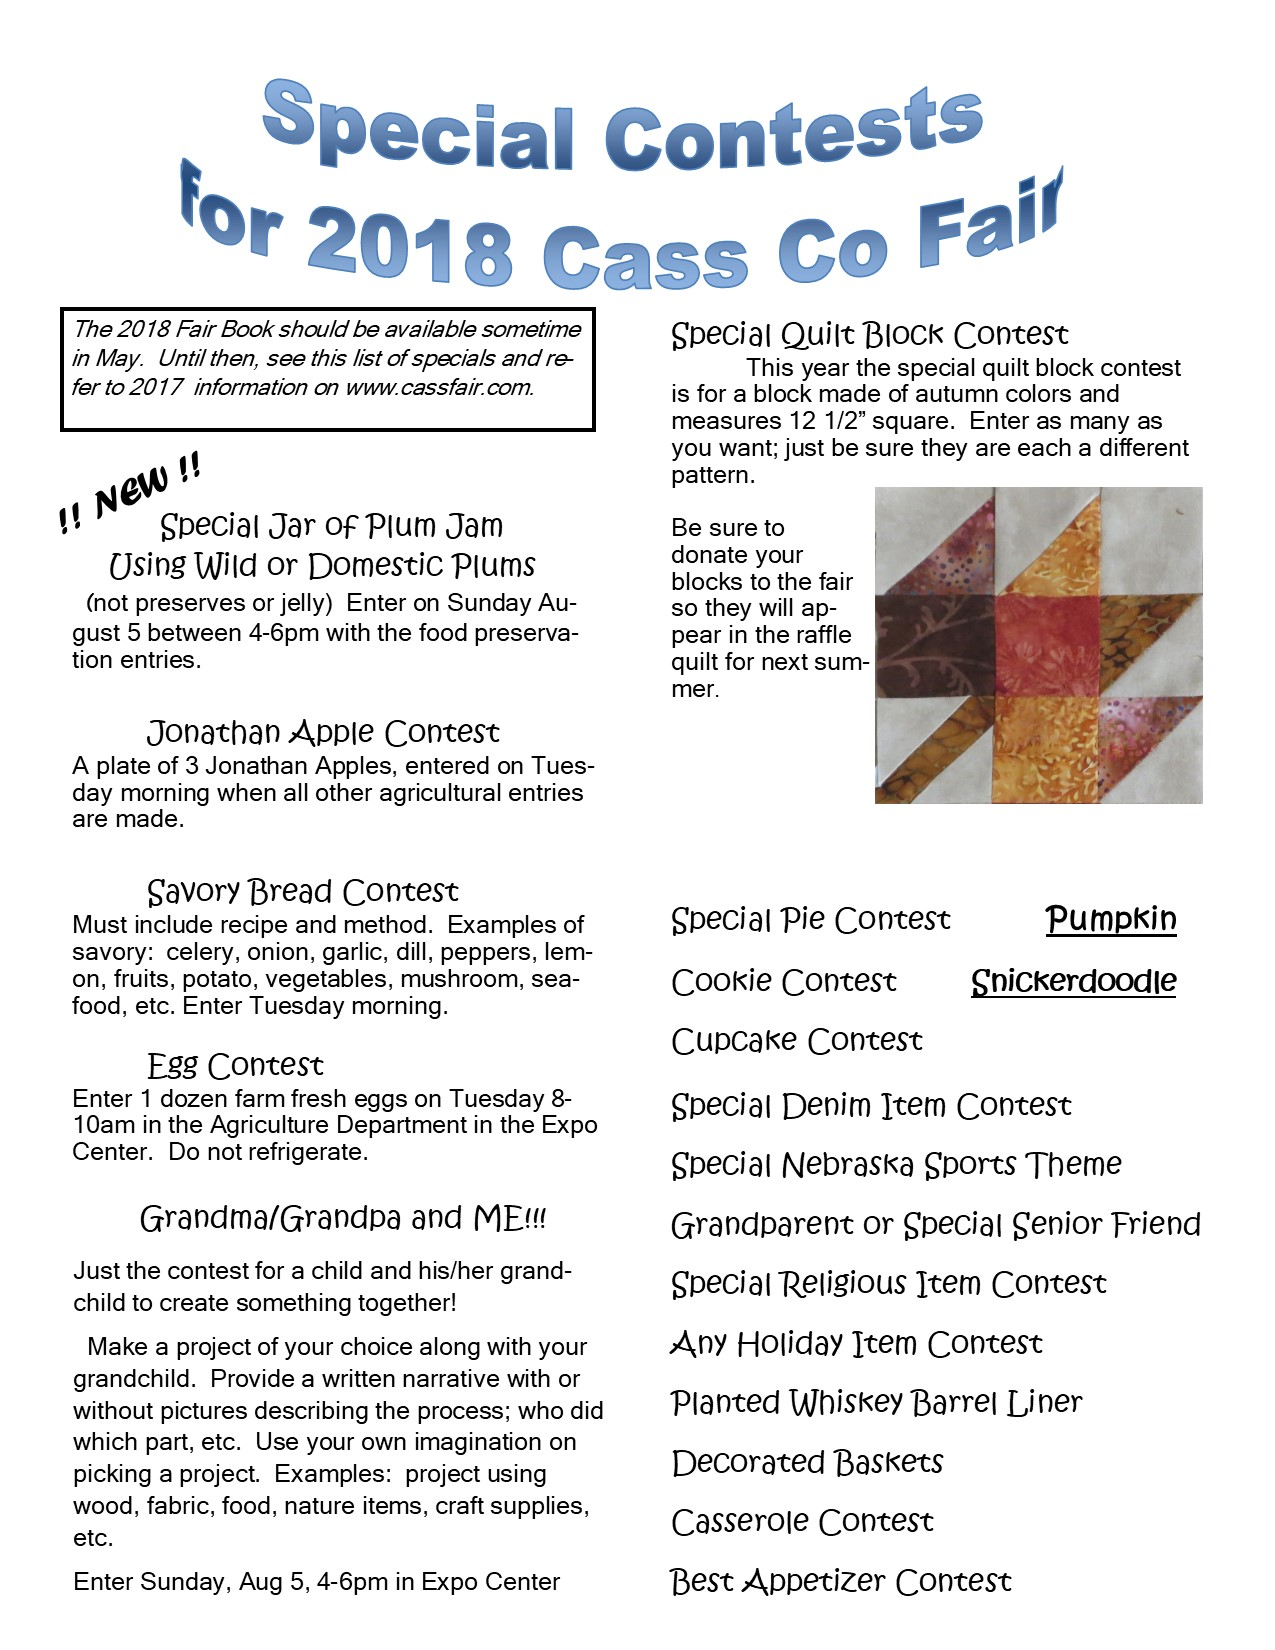 2018 Fair Special Contests